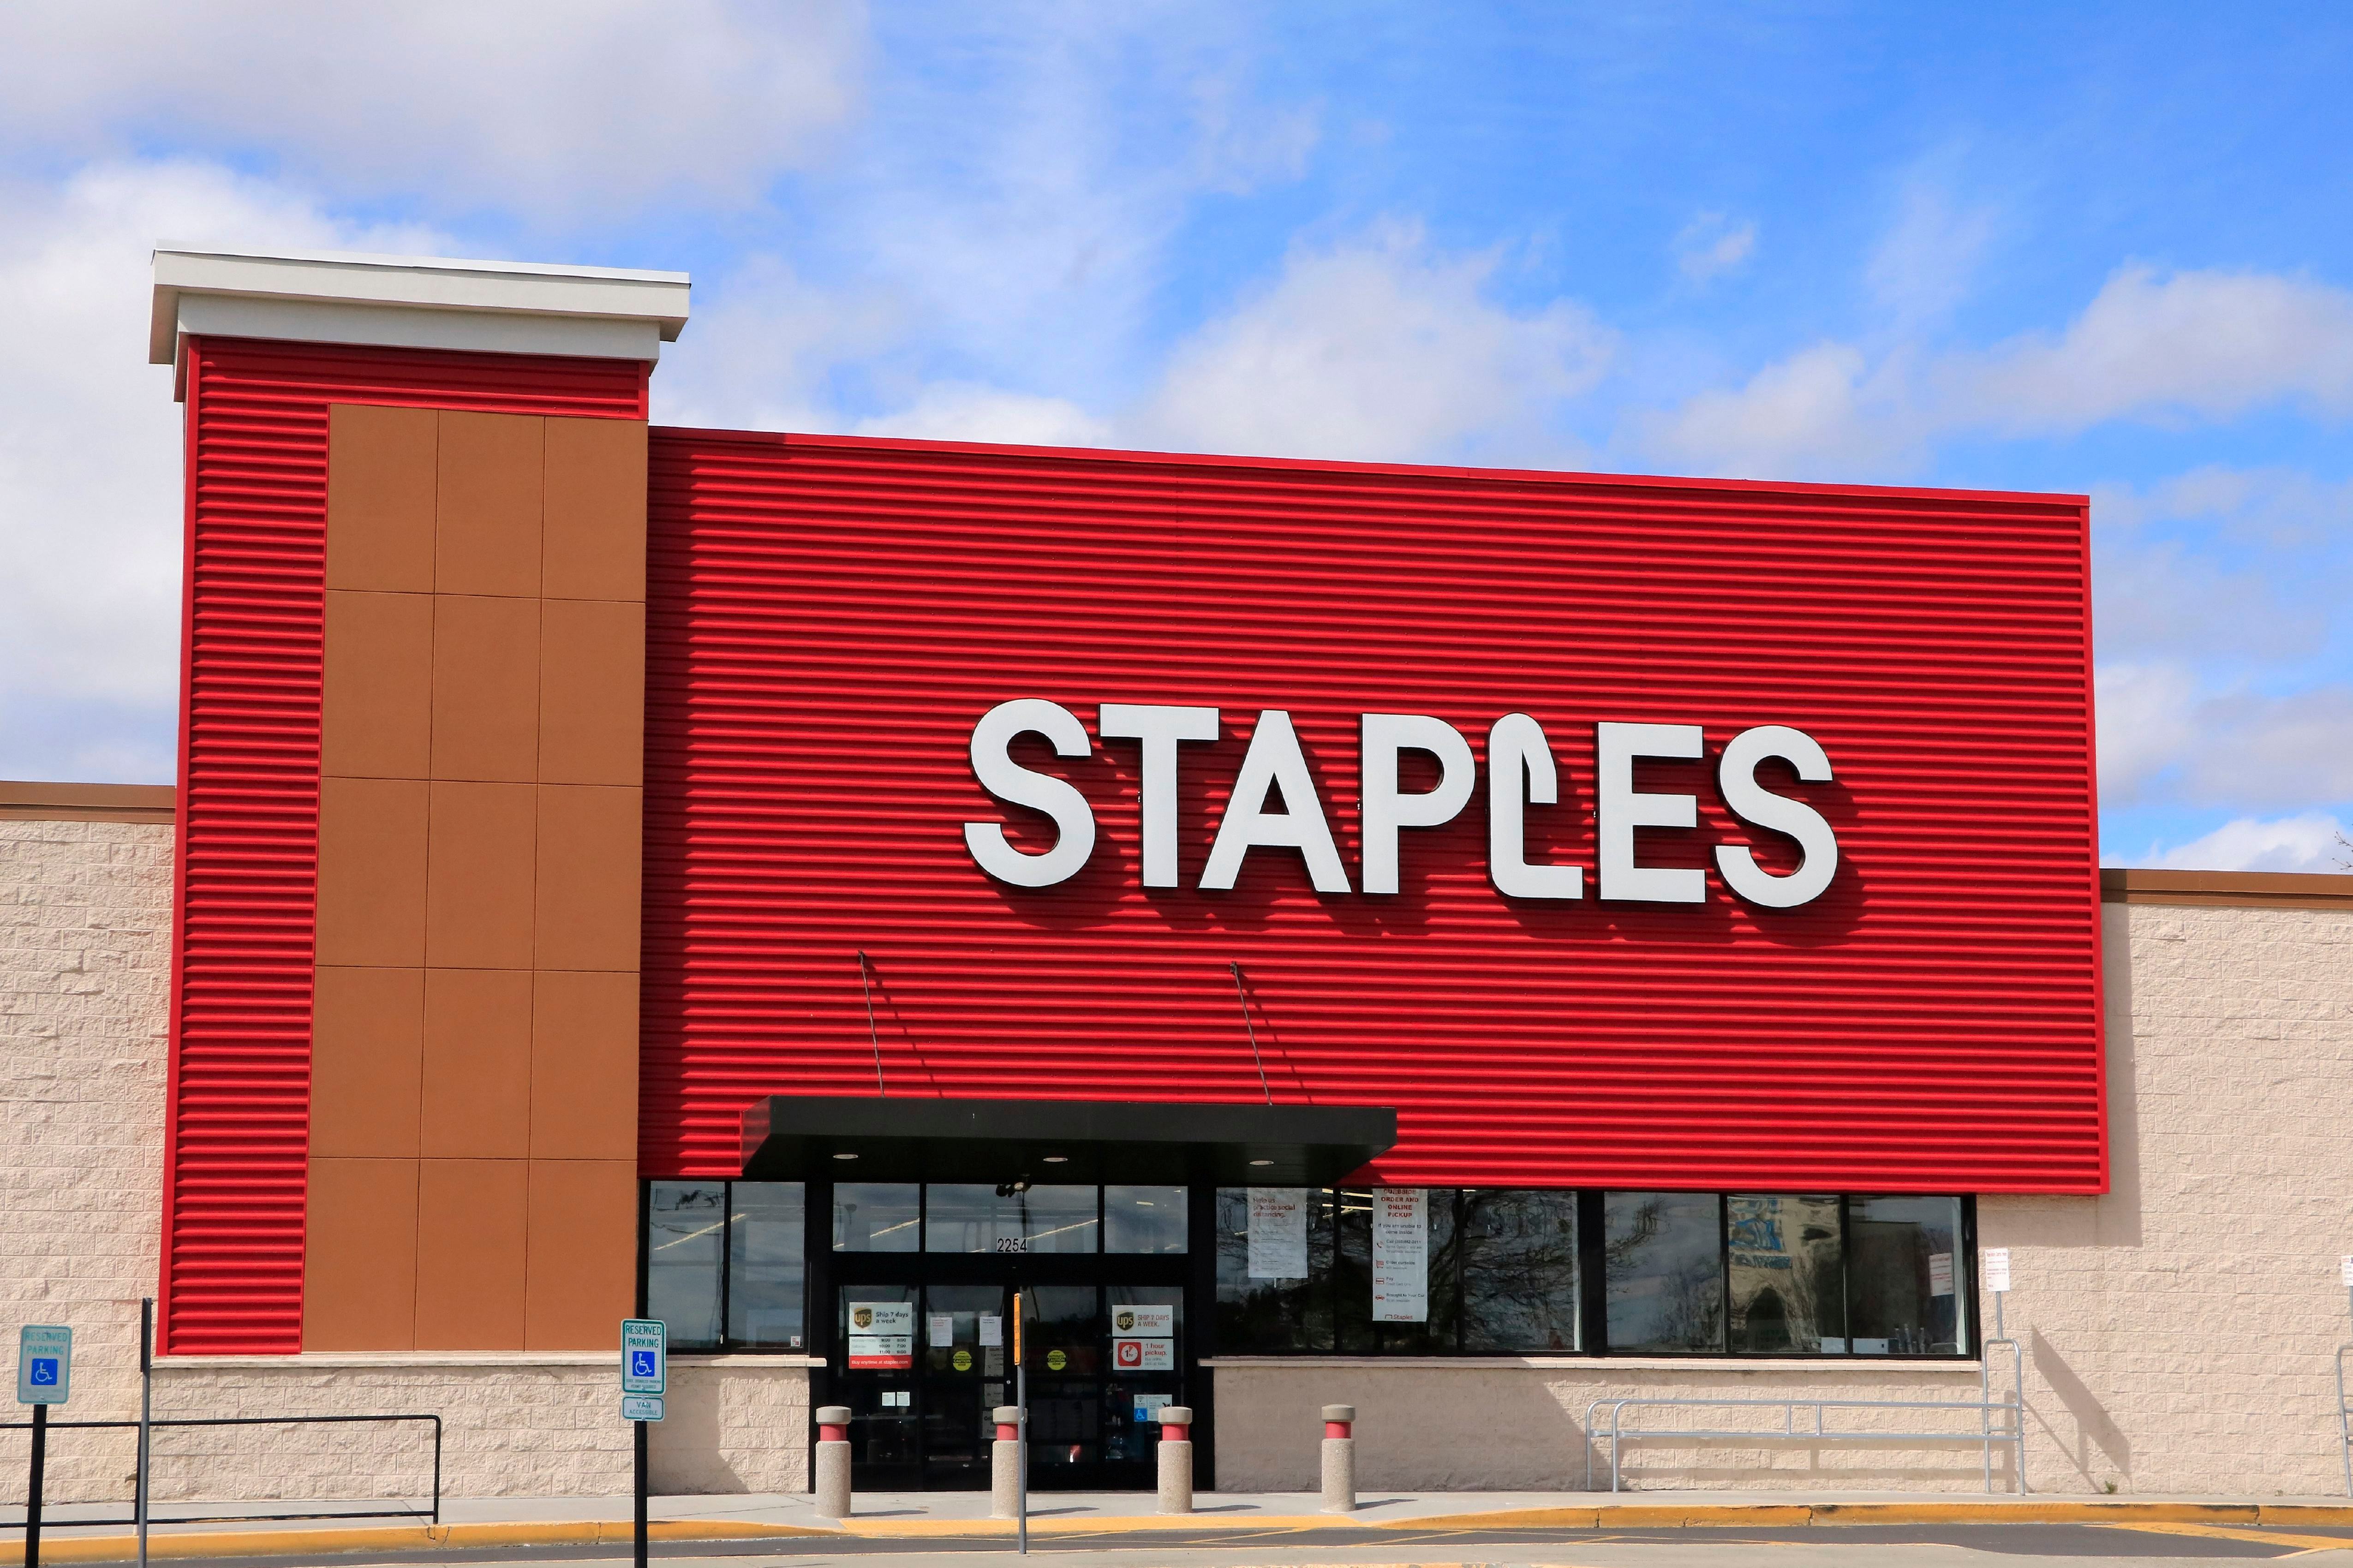 Staples store entrance